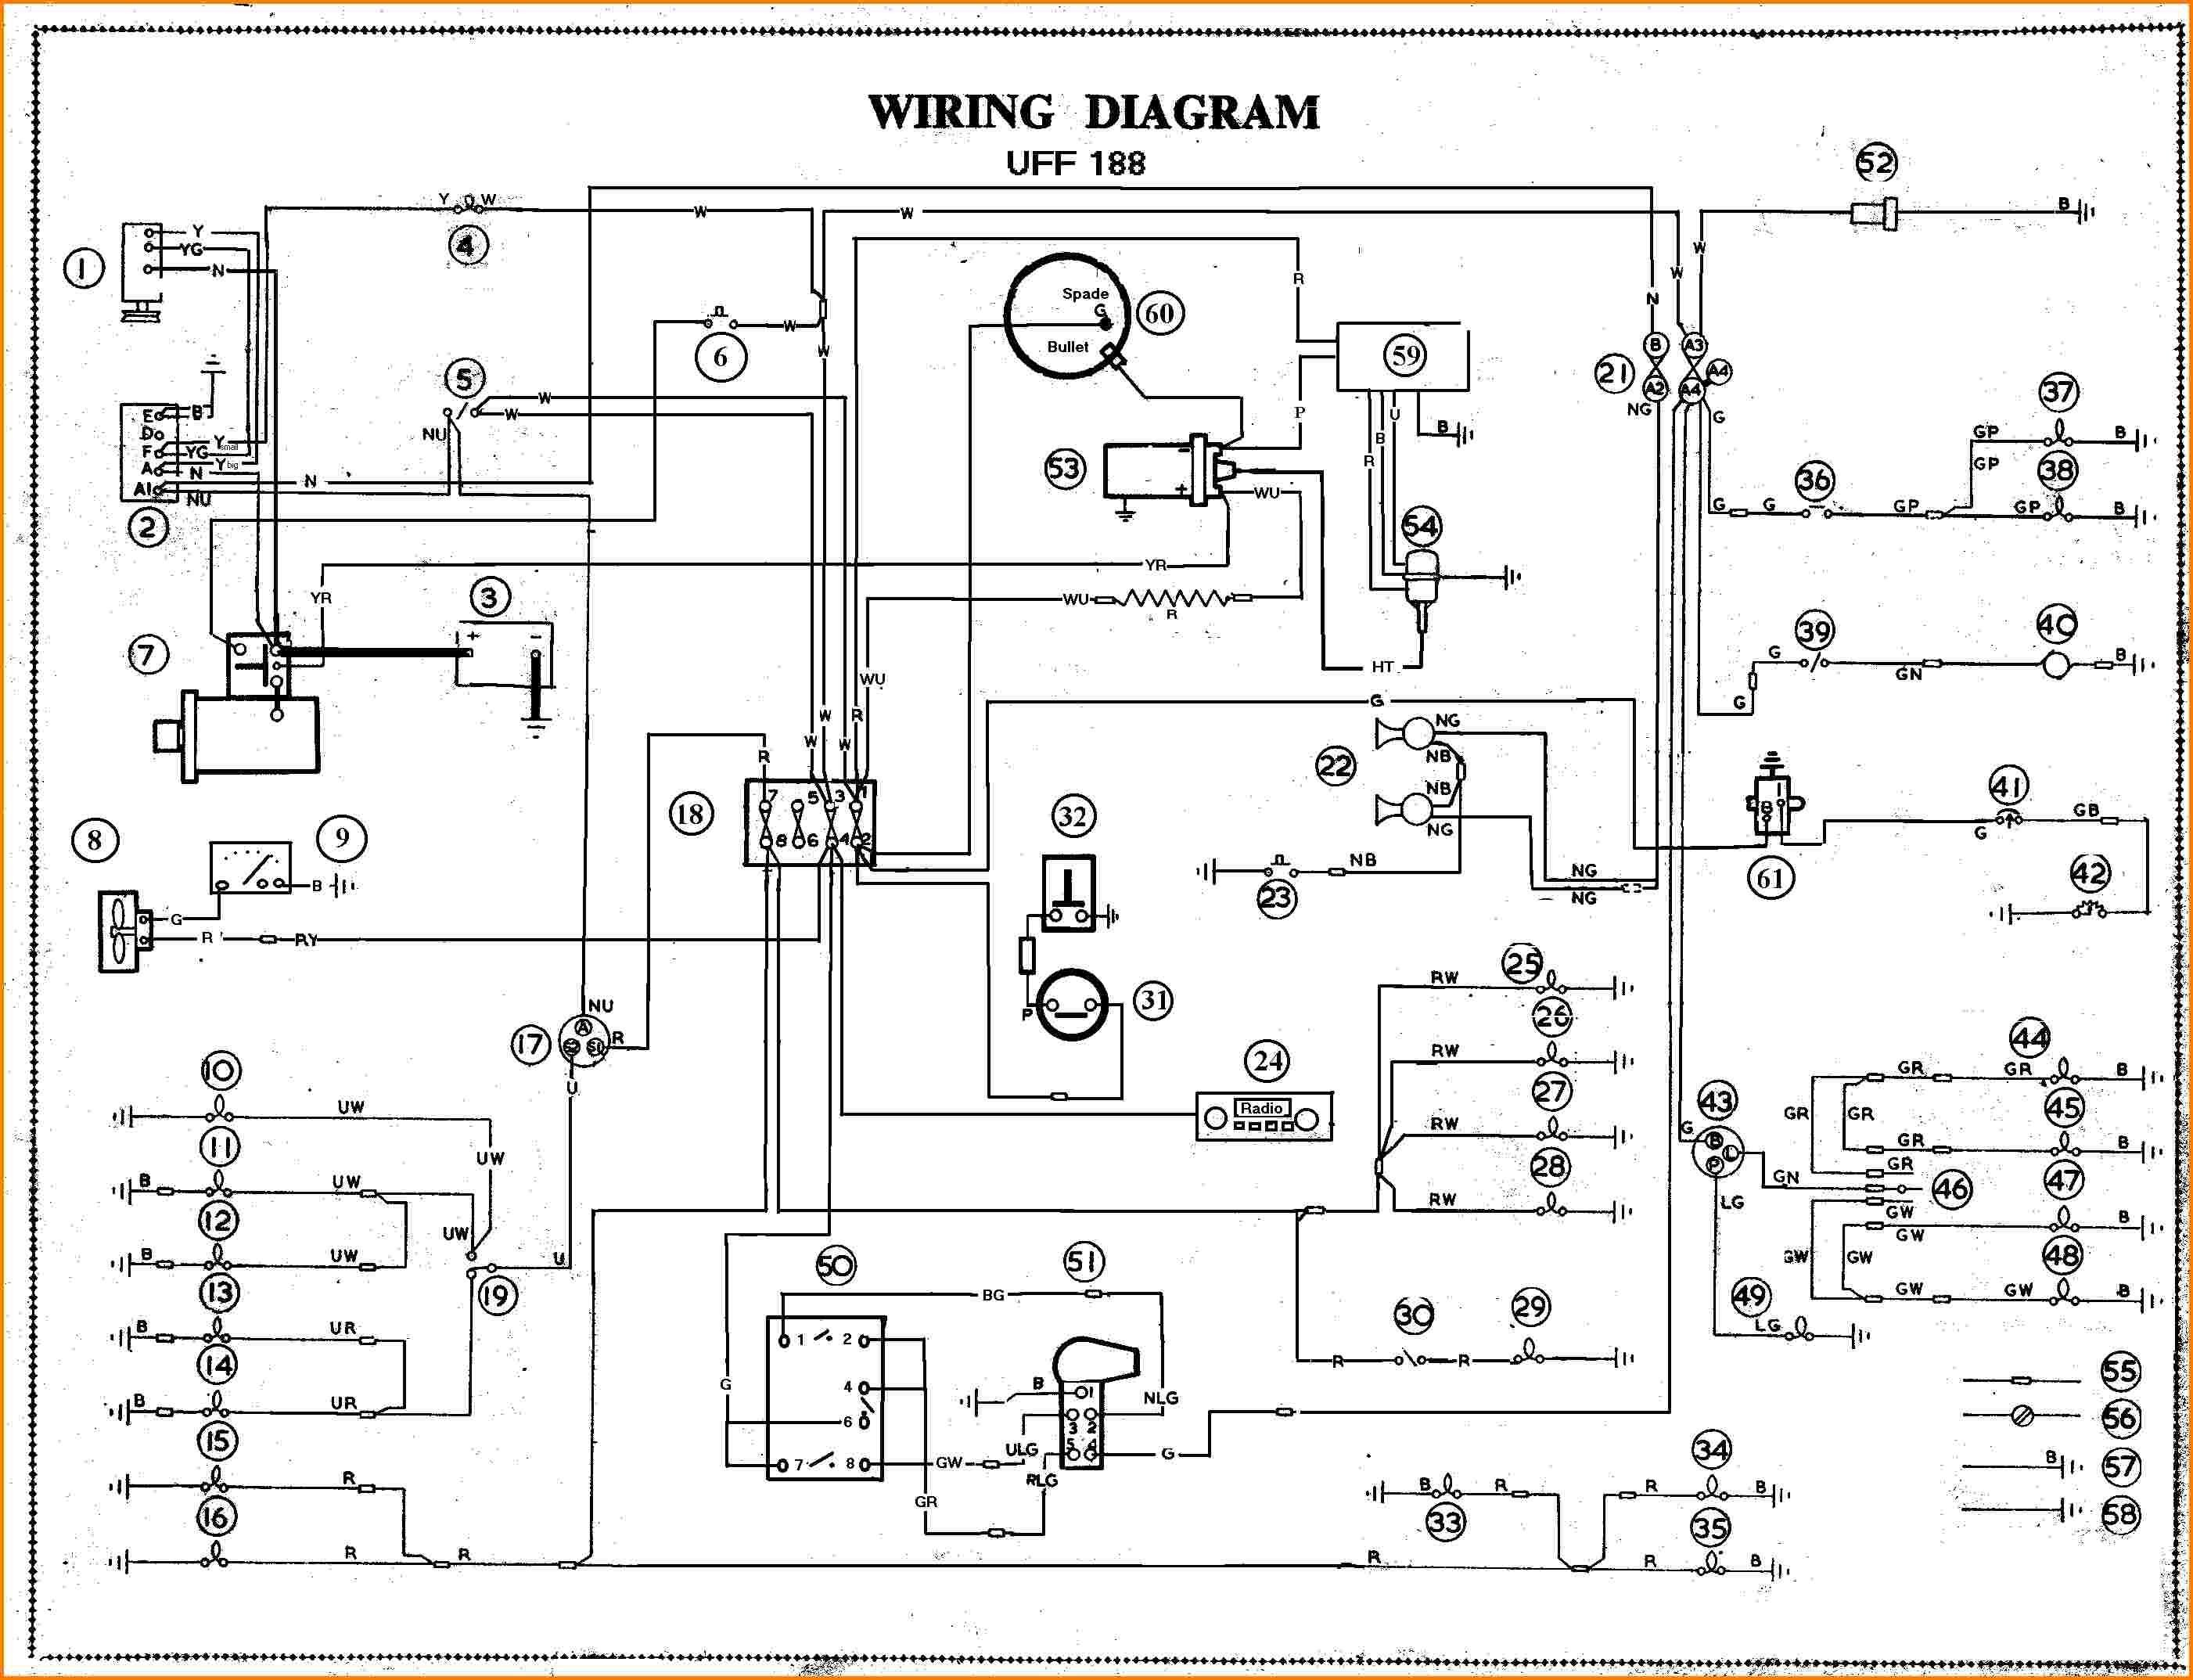 wiringdiagramsfreedownload free chrysler wiring diagrams car wire rh dronomap co Auto Mobile Wiring Diagrams chrysler wiring diagrams free-wiring-diagrams.weebly.com